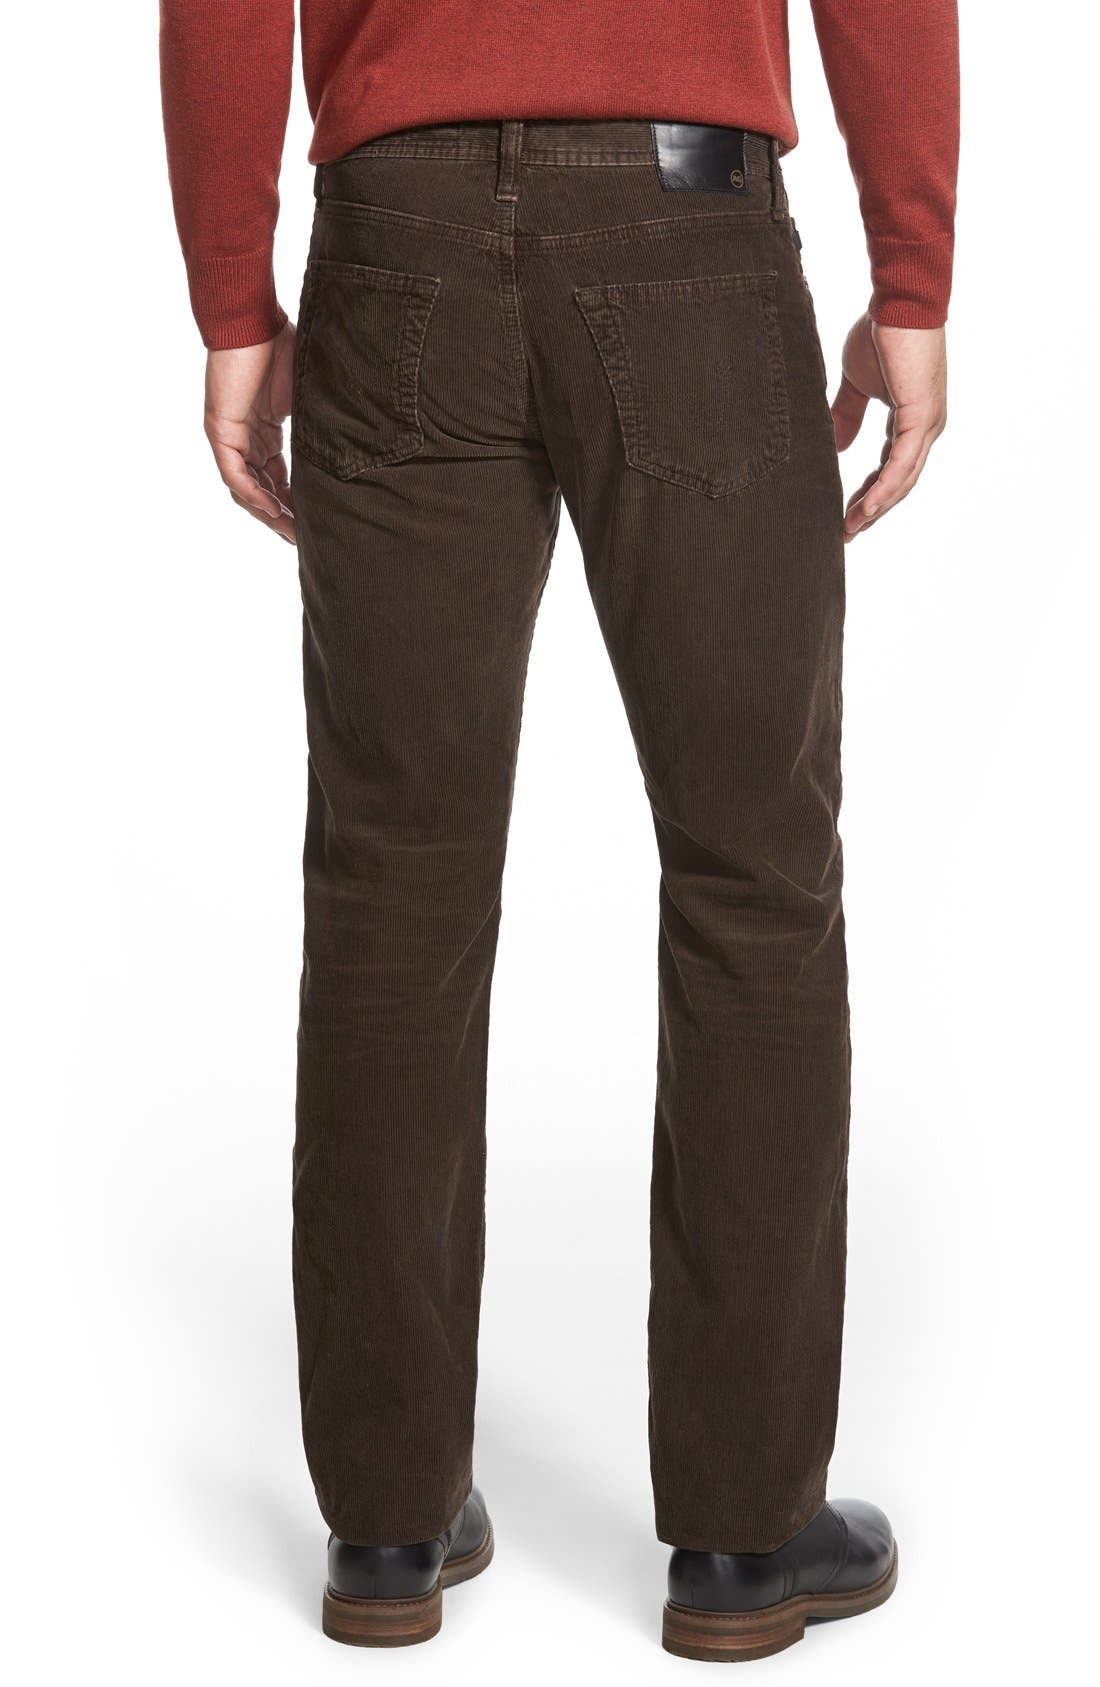 'Graduate' Tailored Straight Leg Corduroy Pants,                             Alternate thumbnail 43, color,